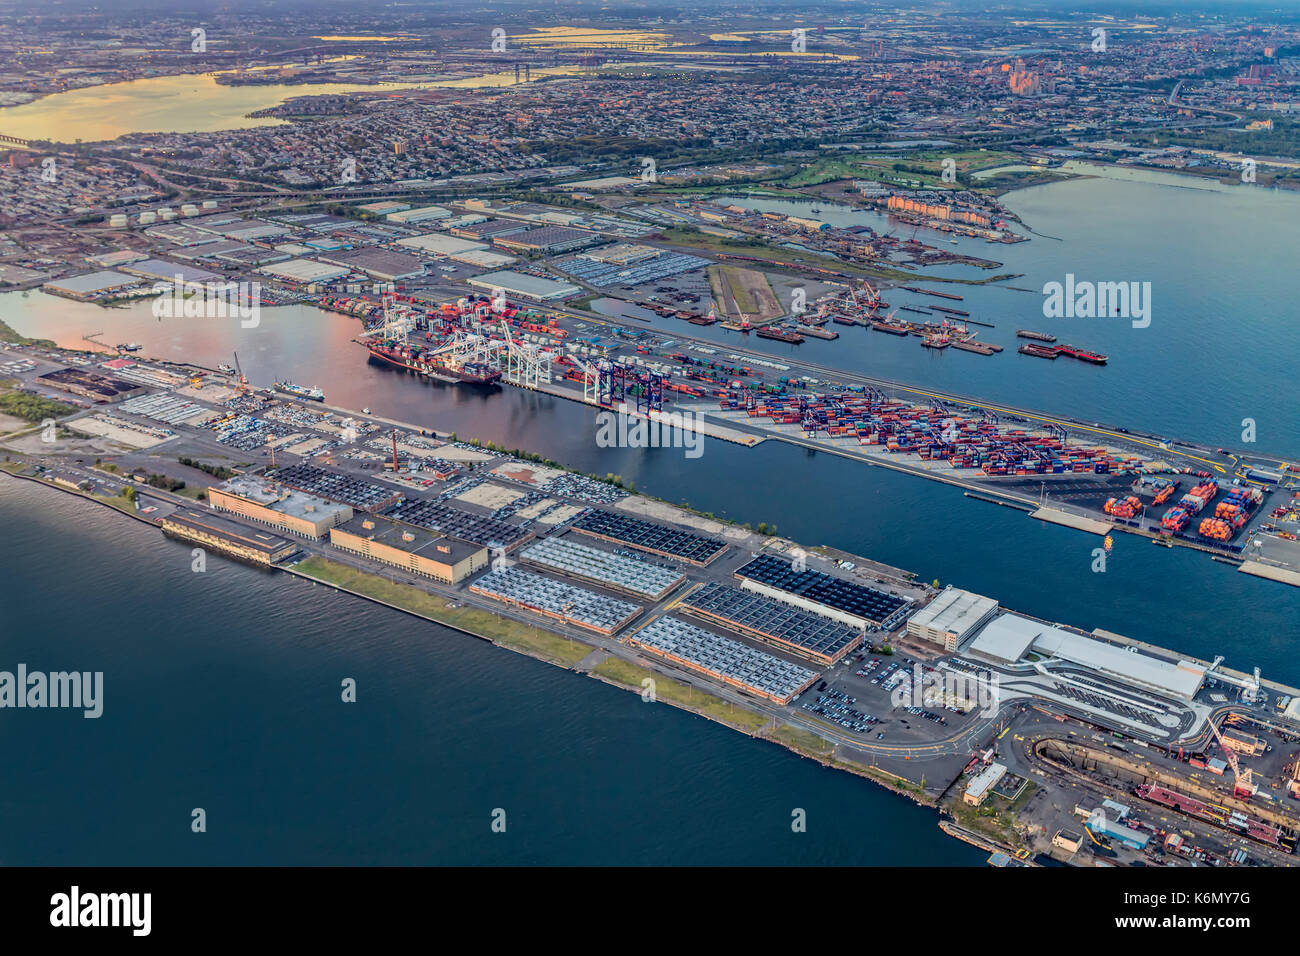 Aerial View of the Bayonne Container Terminal and industrial area in New Jersey. Stock Photo